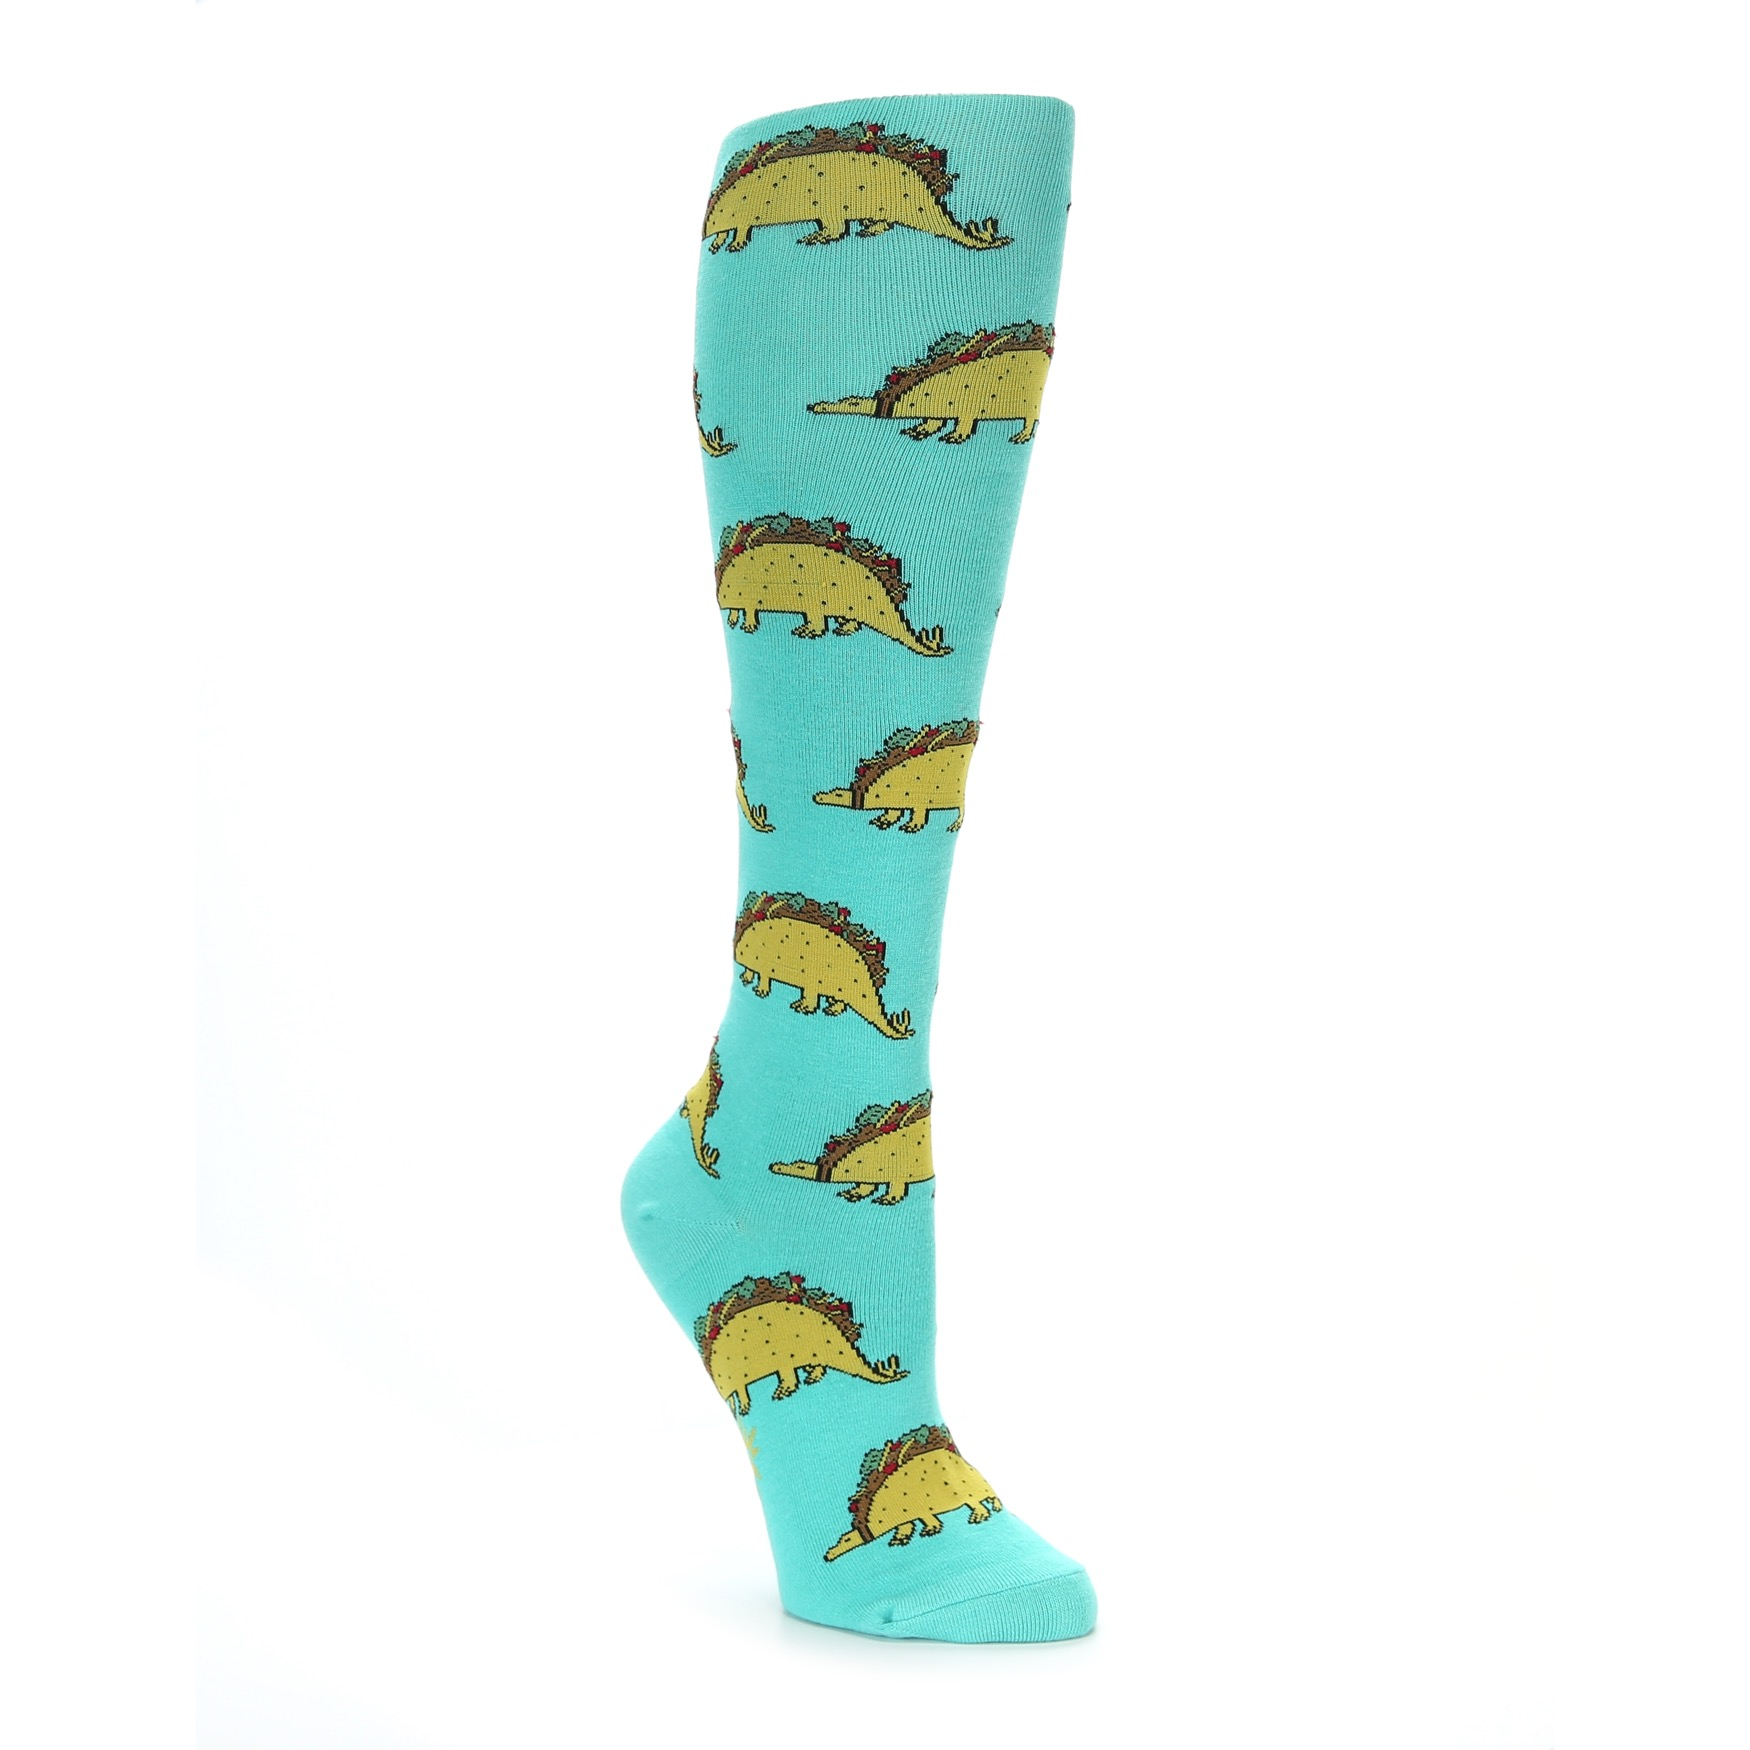 ce3a3d6f8 Spa green tacosaurus tacos and dinosaurs women s knee high socks